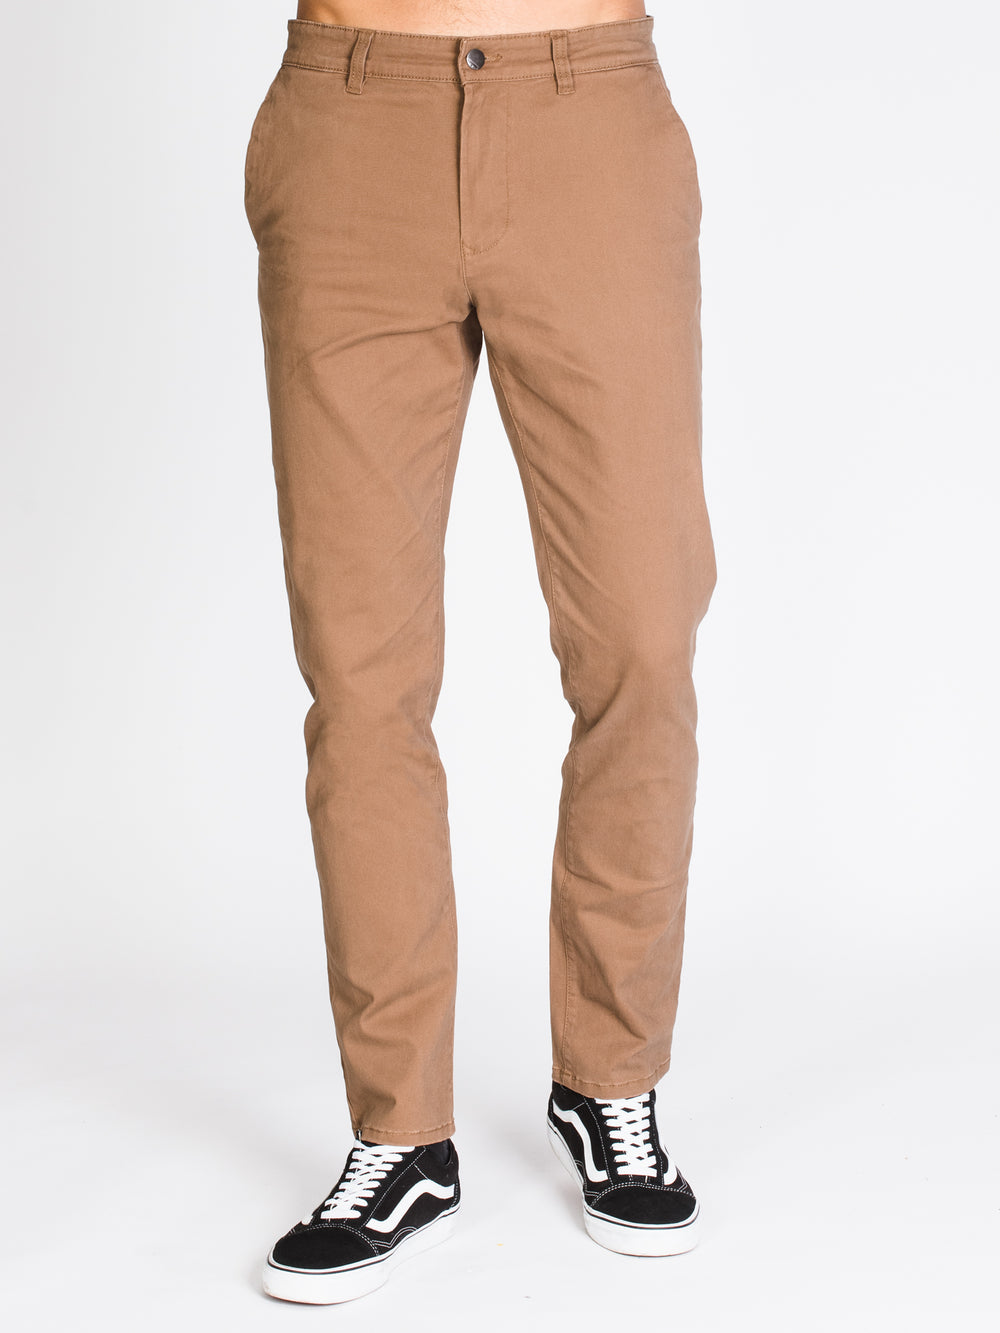 MENS SLIM CHINO PANTS - FLAX